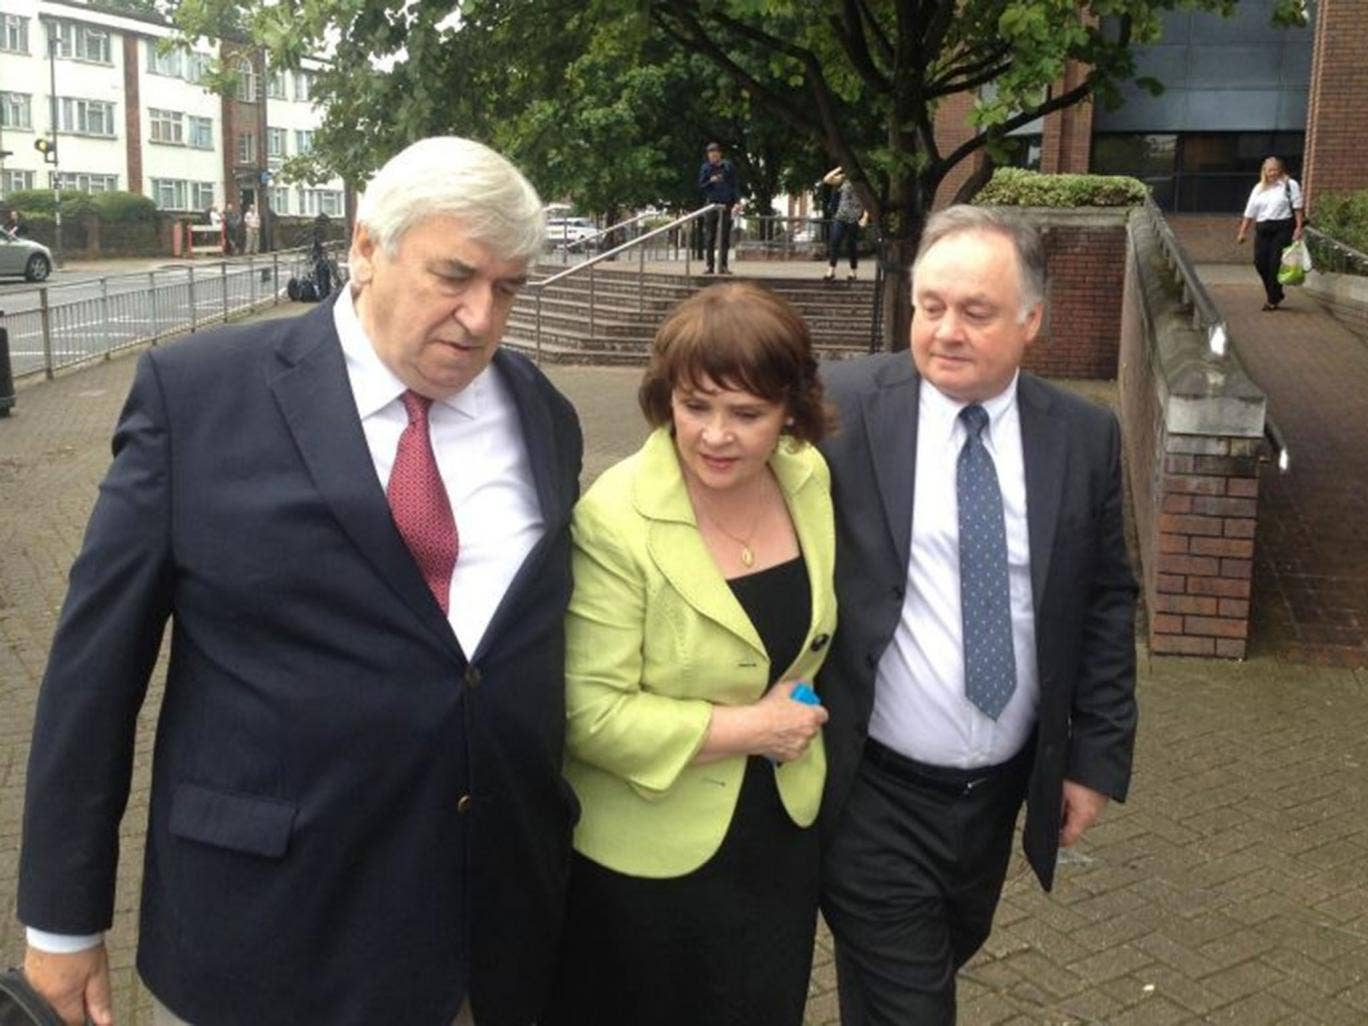 John Brown (right) with his sister, Eurovision Song Contest winner and former Irish presidential candidate Dana Rosemary Scallon, and her husband Damien Scallon, as he leaves Harrow Crown Court after he was found not guilty of five counts of historic sex